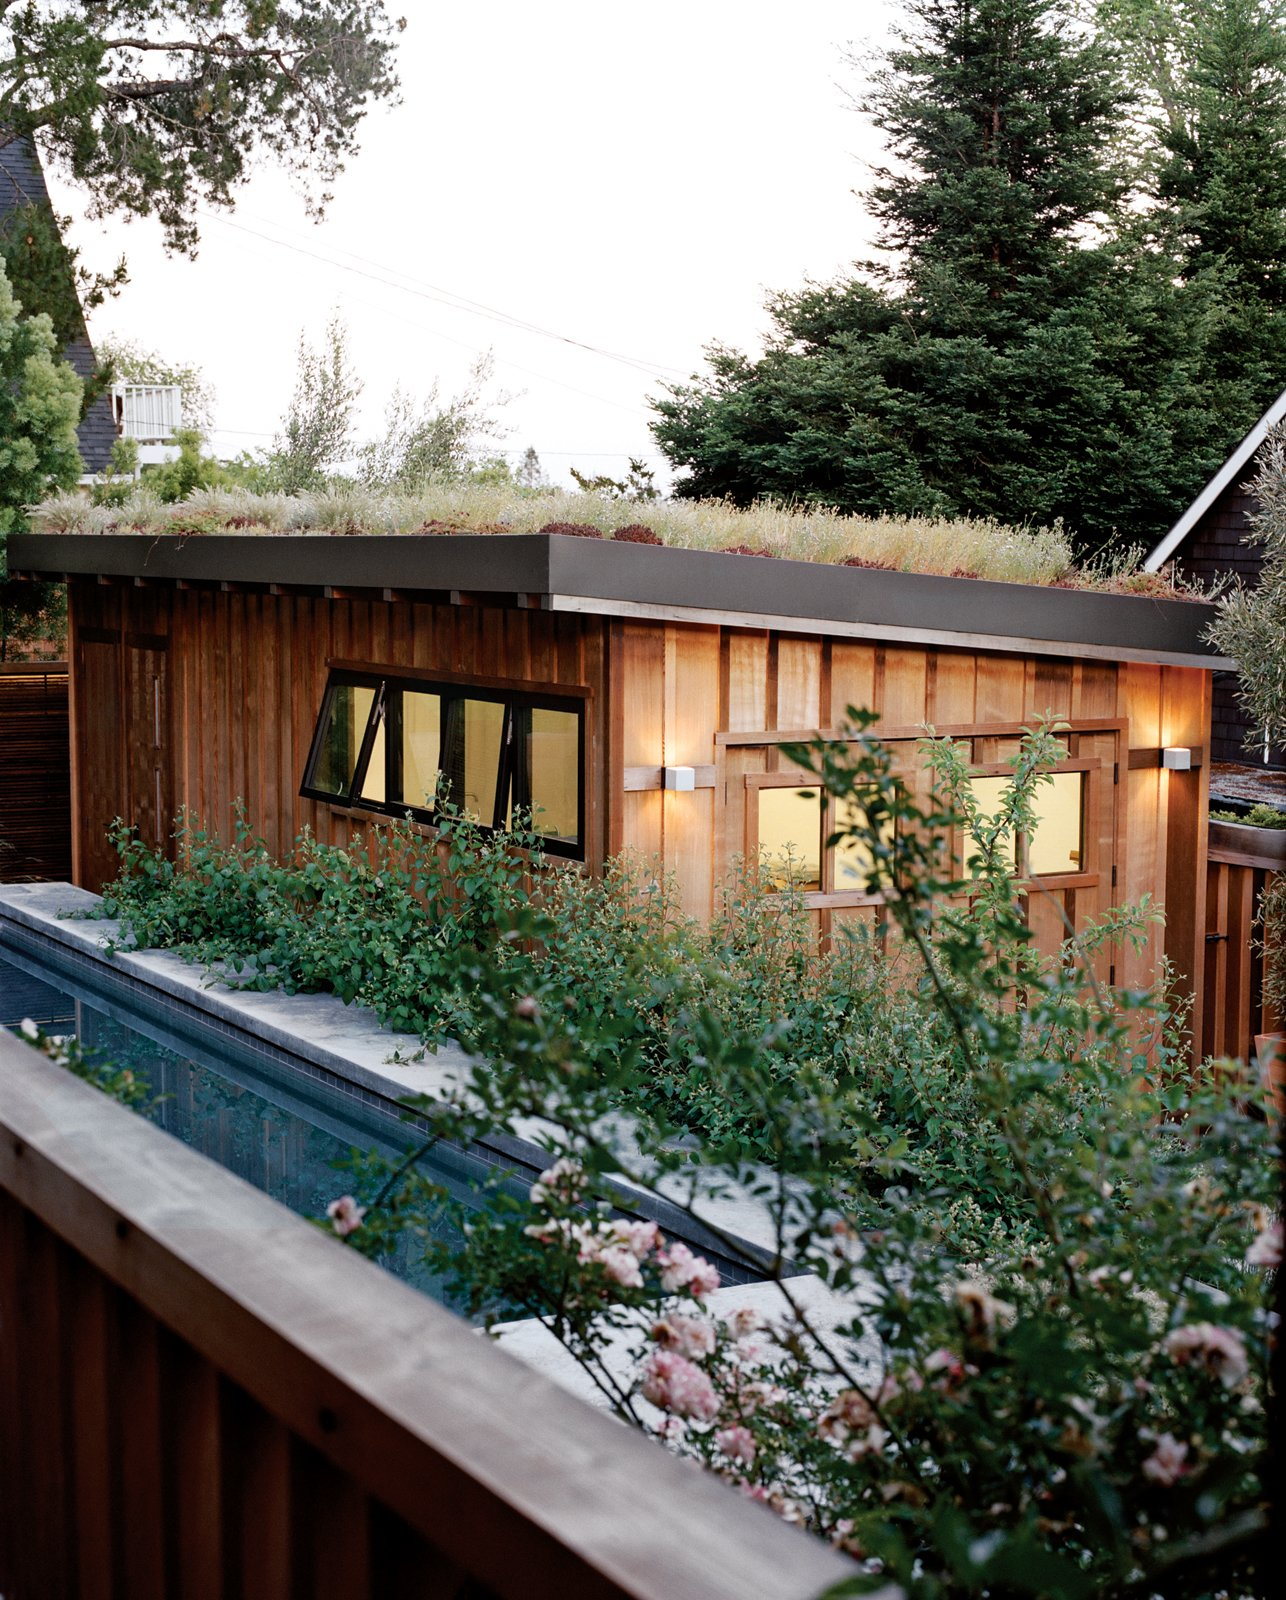 Small, Concrete, Green, Detached Garage, and Outdoor A green roof blooms atop the detached garage.  Best Outdoor Green Photos from Charming Weekend Cottage Renovation in Marin